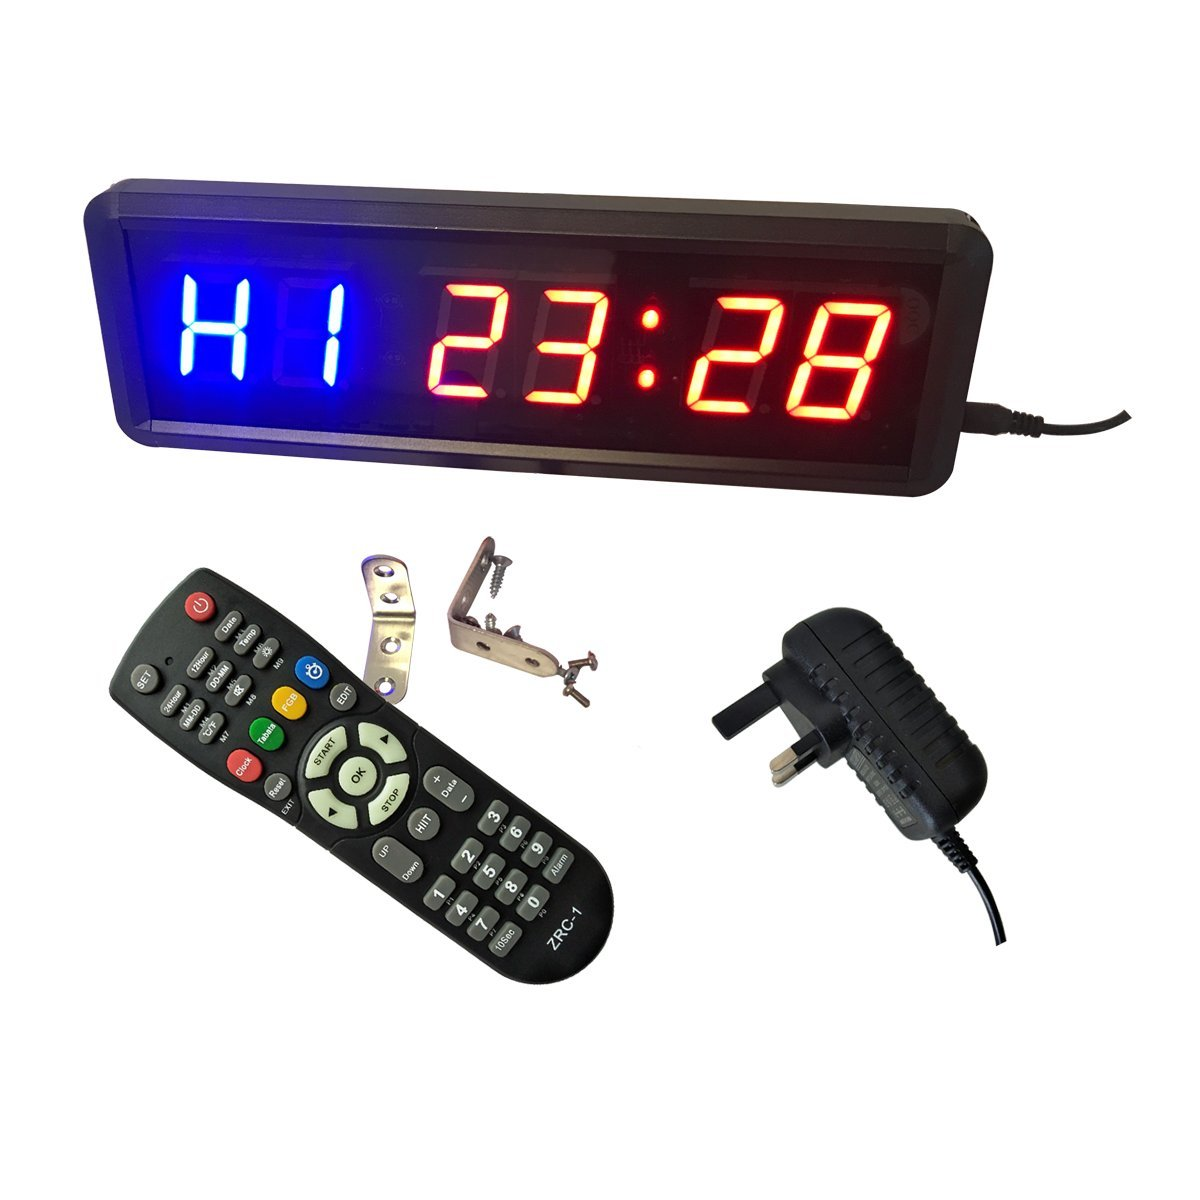 Ledgital Gym Timer 11x3.5x1.4in w/Remote Control for Indoor Use UK plug Only DLC Electronics